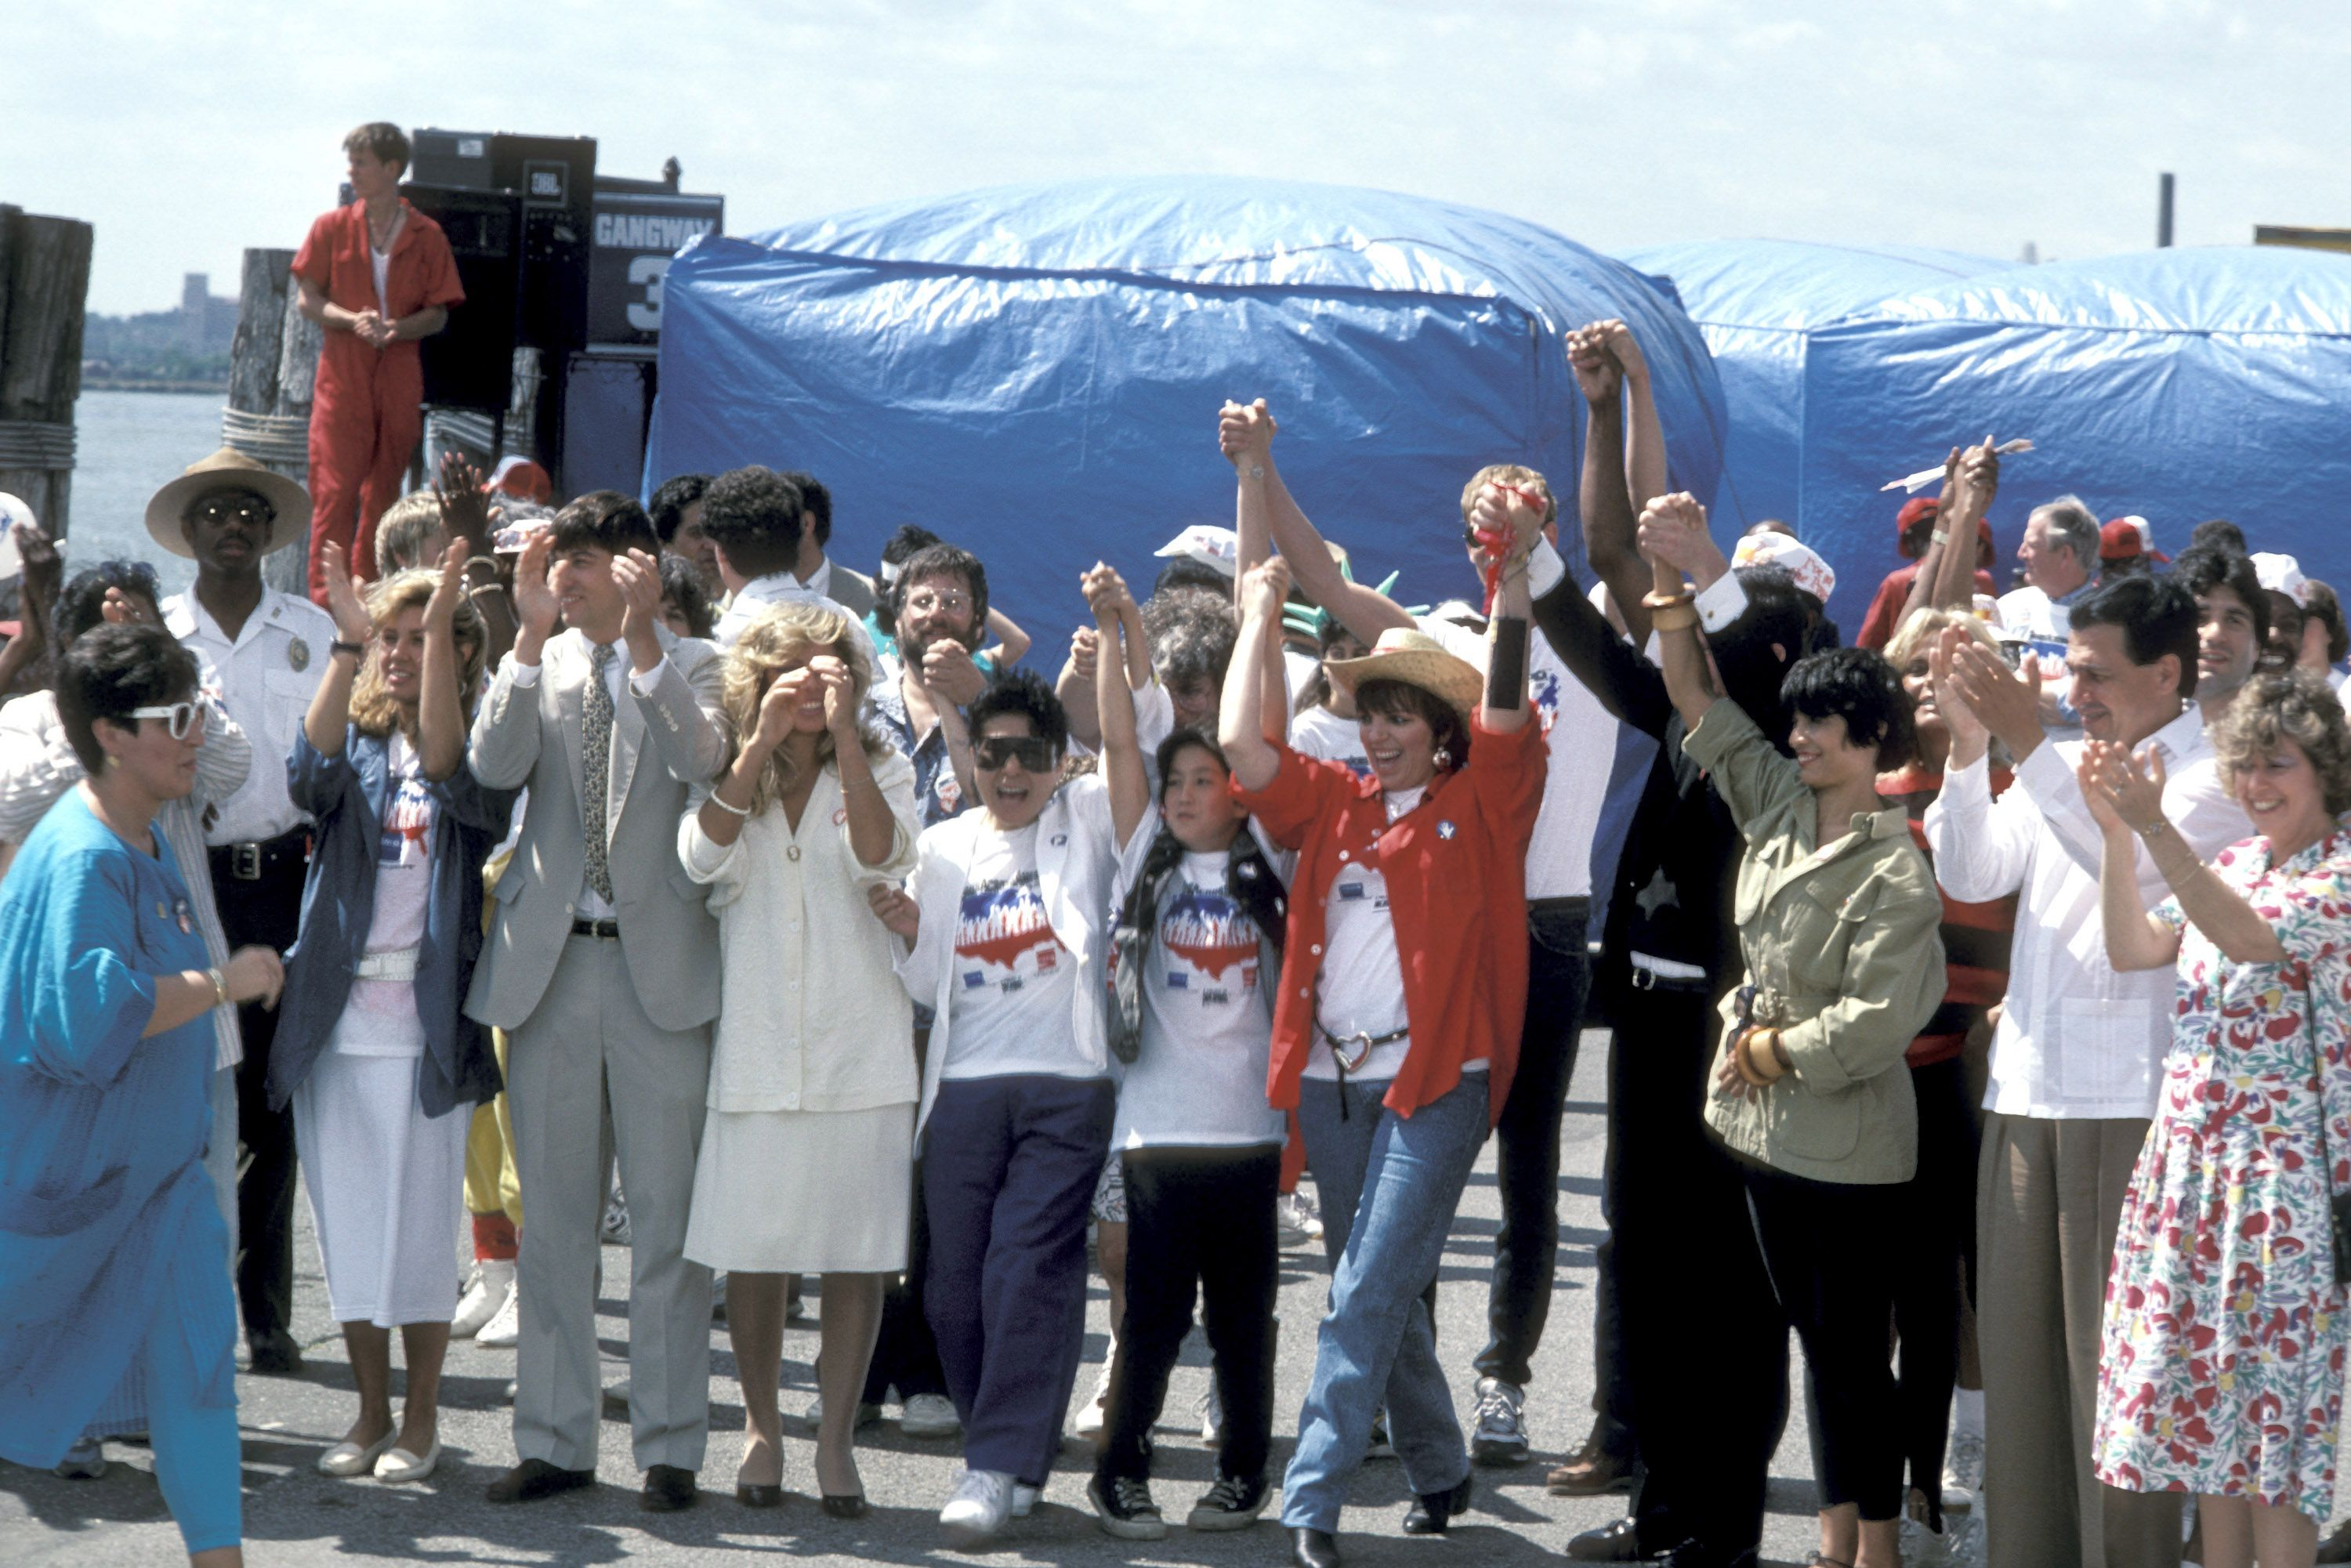 Yoko Ono, Sean Lennon, Liza Minnelli, and others during Hands Across America at Battery Park in New York City.